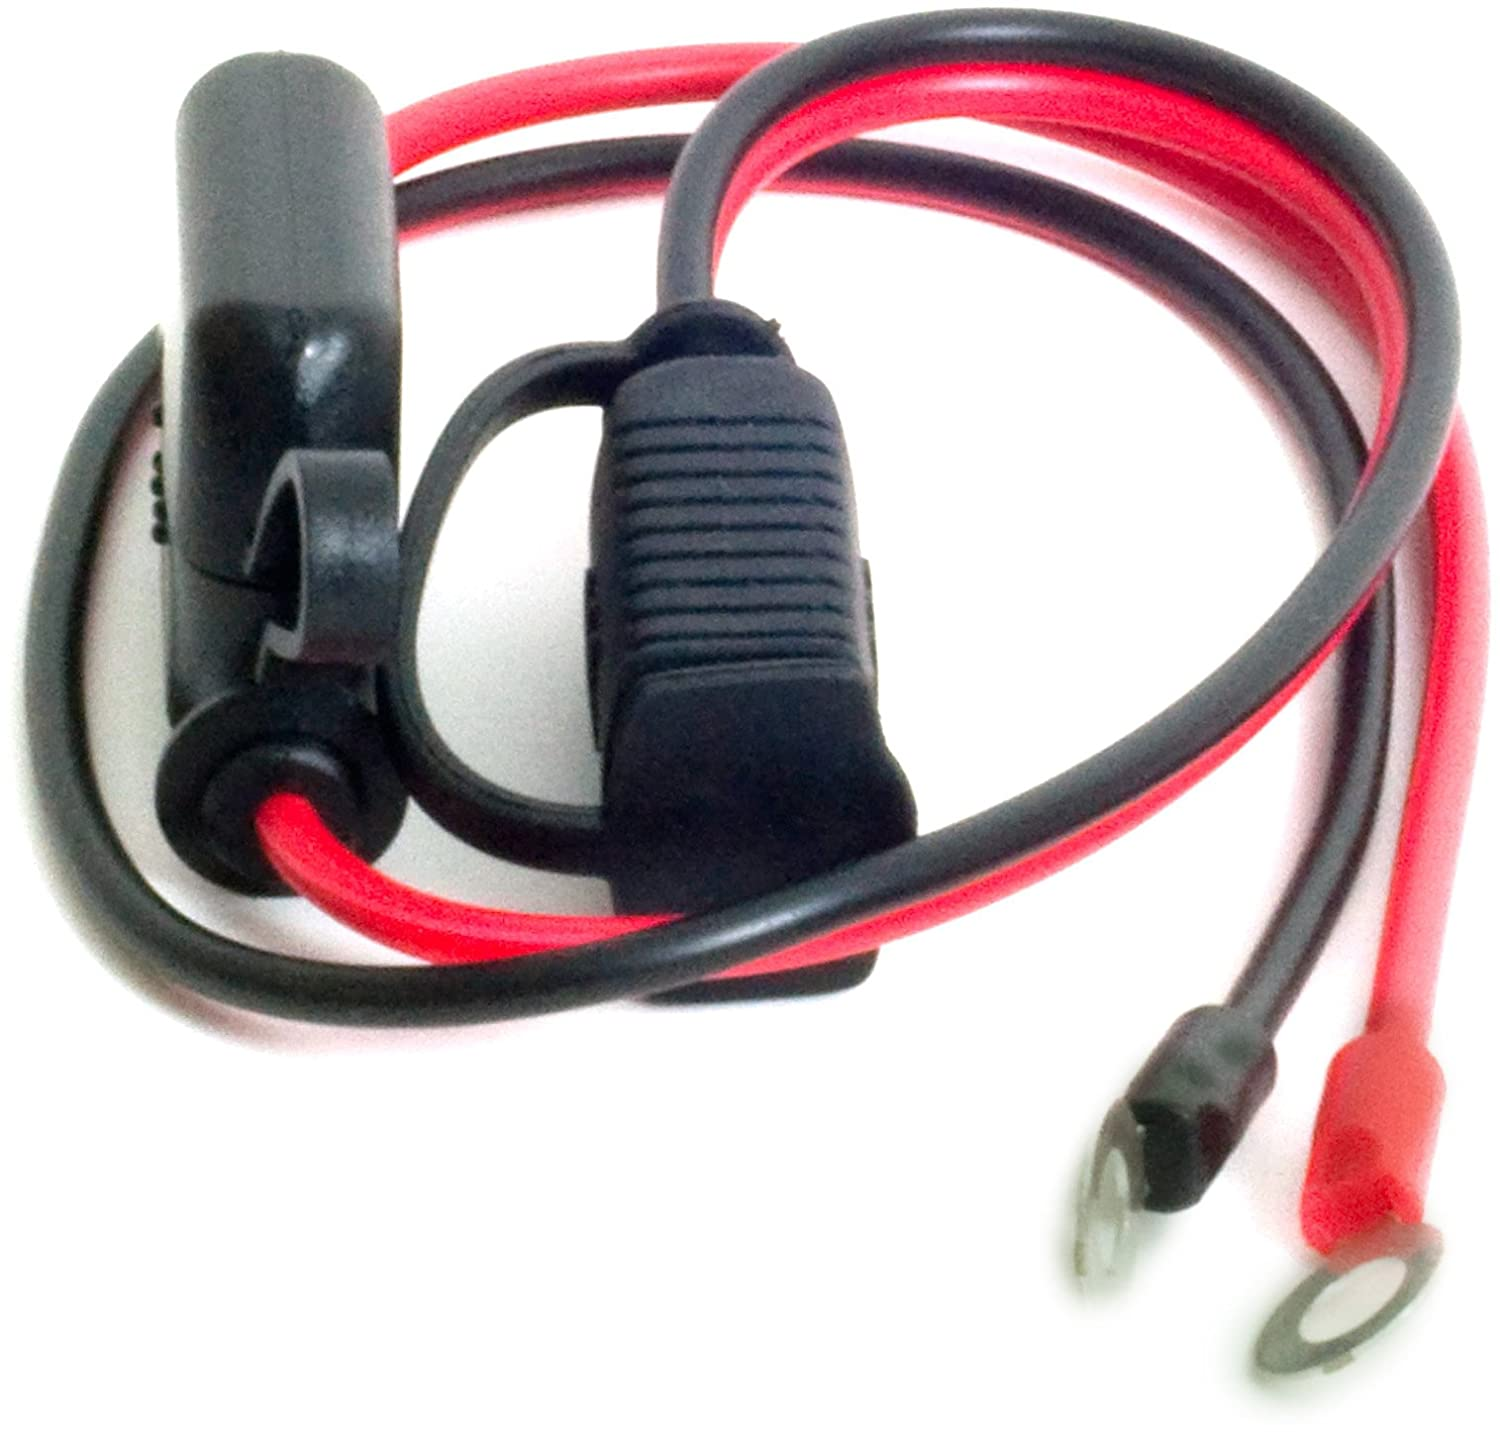 Bosch C35ac0 Quick Connect Cable Harness For C3 Battery Wire Charger With Built In Fuse Automotive